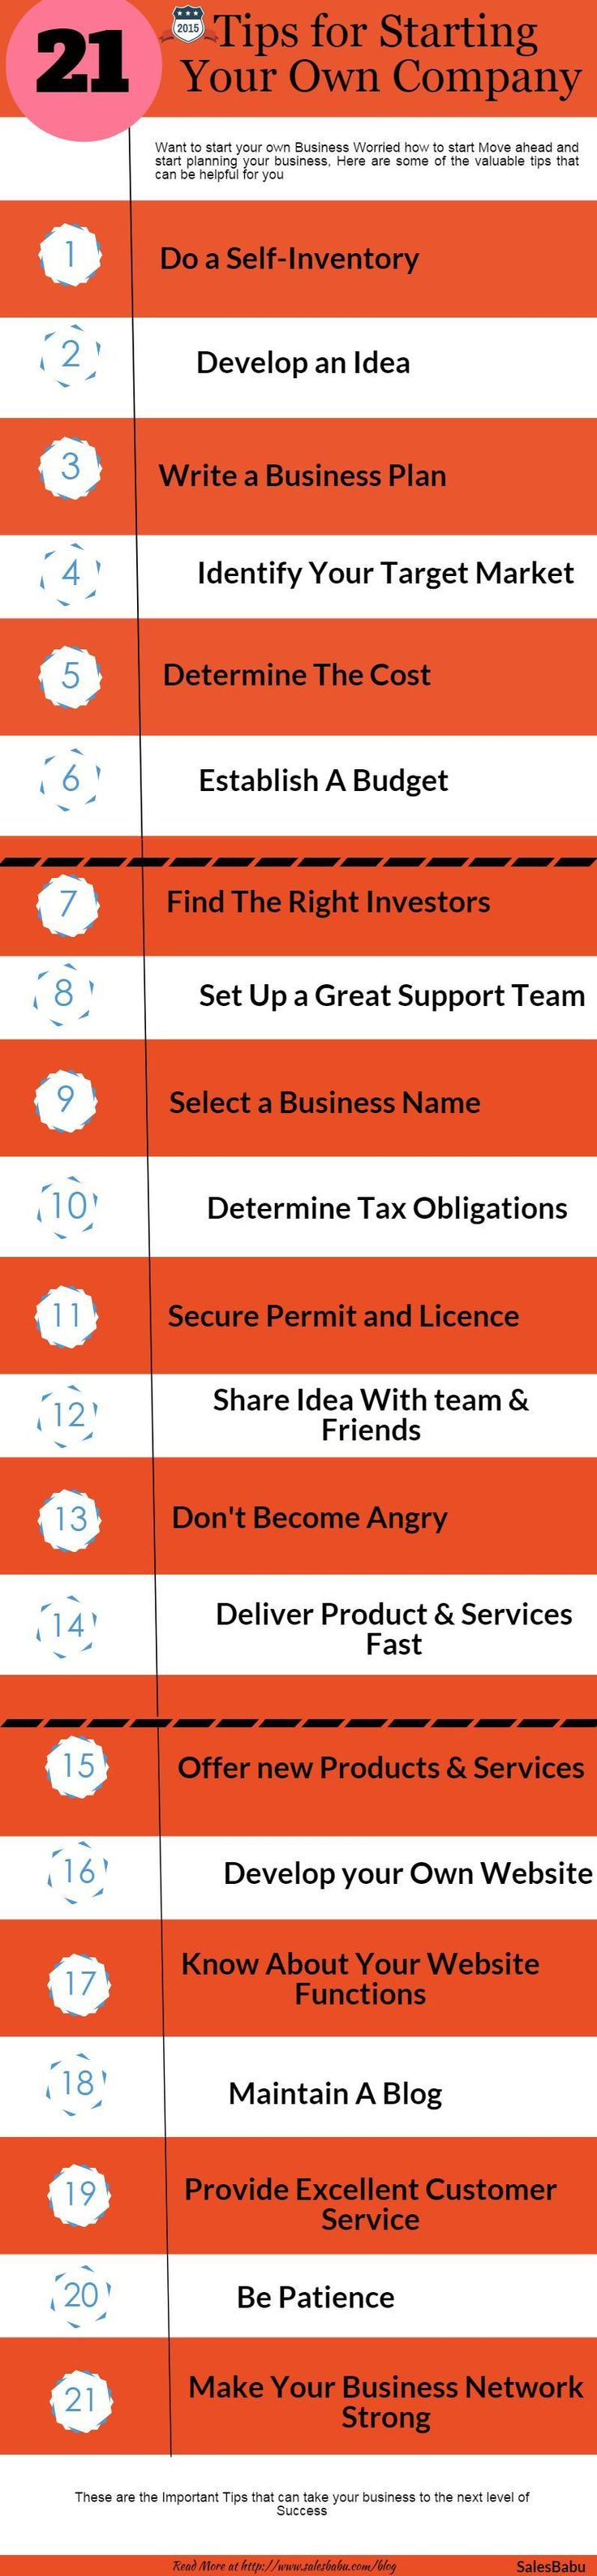 21 Tips for Starting Your Own Company